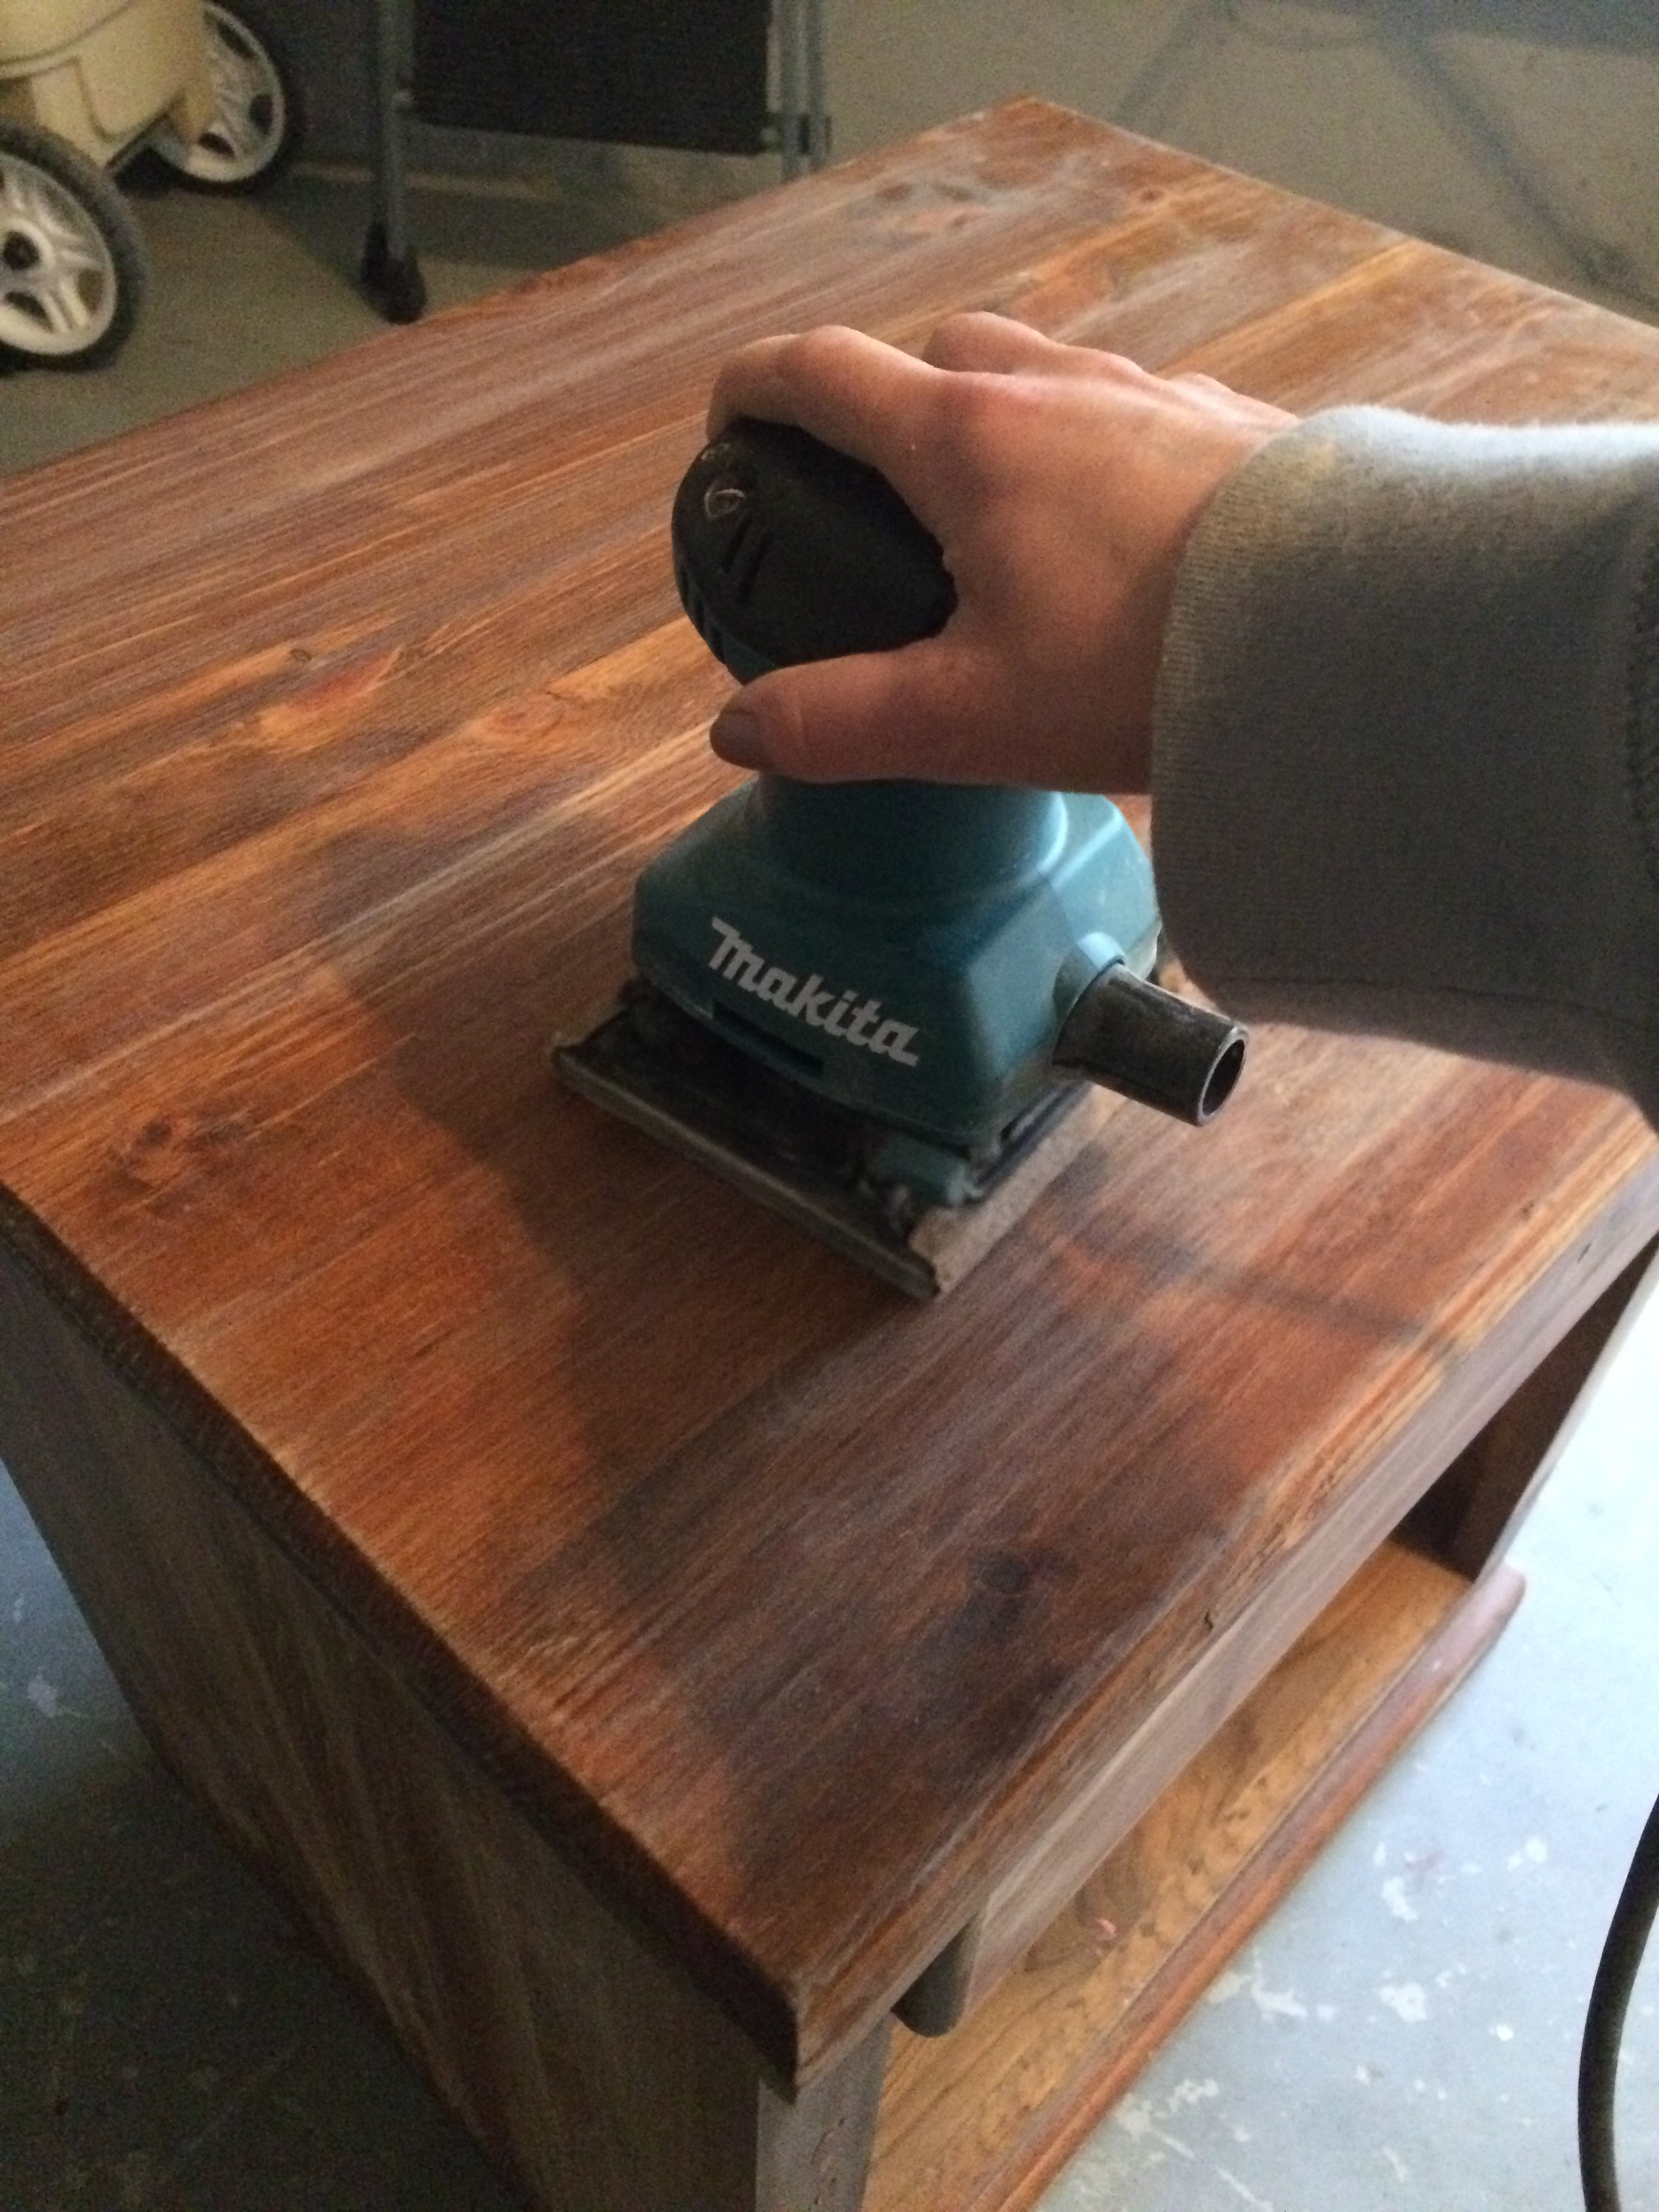 How to dust furniture - Using A Hand Sander Lightly Sand All Surfaces That Are Going To Be Painted After Sanding Dust And Whip Down Your Furniture With